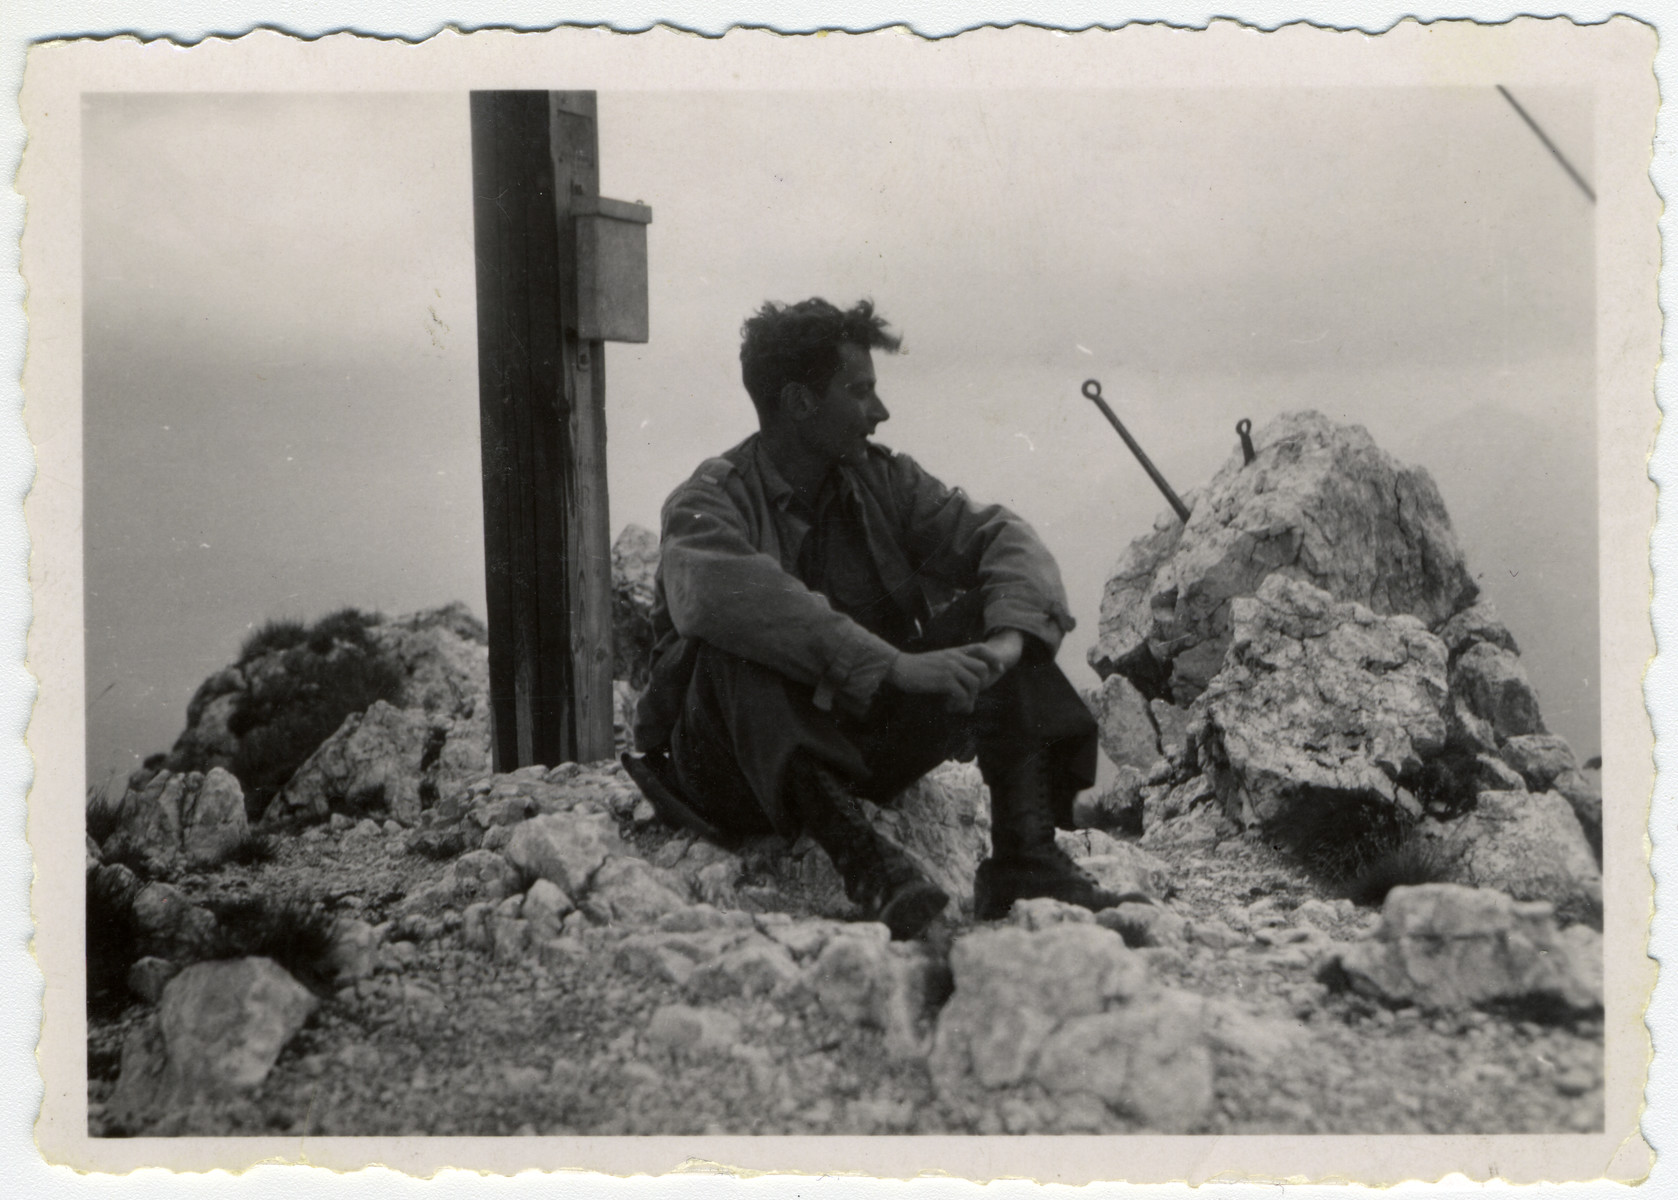 Jewish serviceman Kurt Klein hikes in the mountains near Oberammergau where he had hiked with his family before immigrating to the United States.